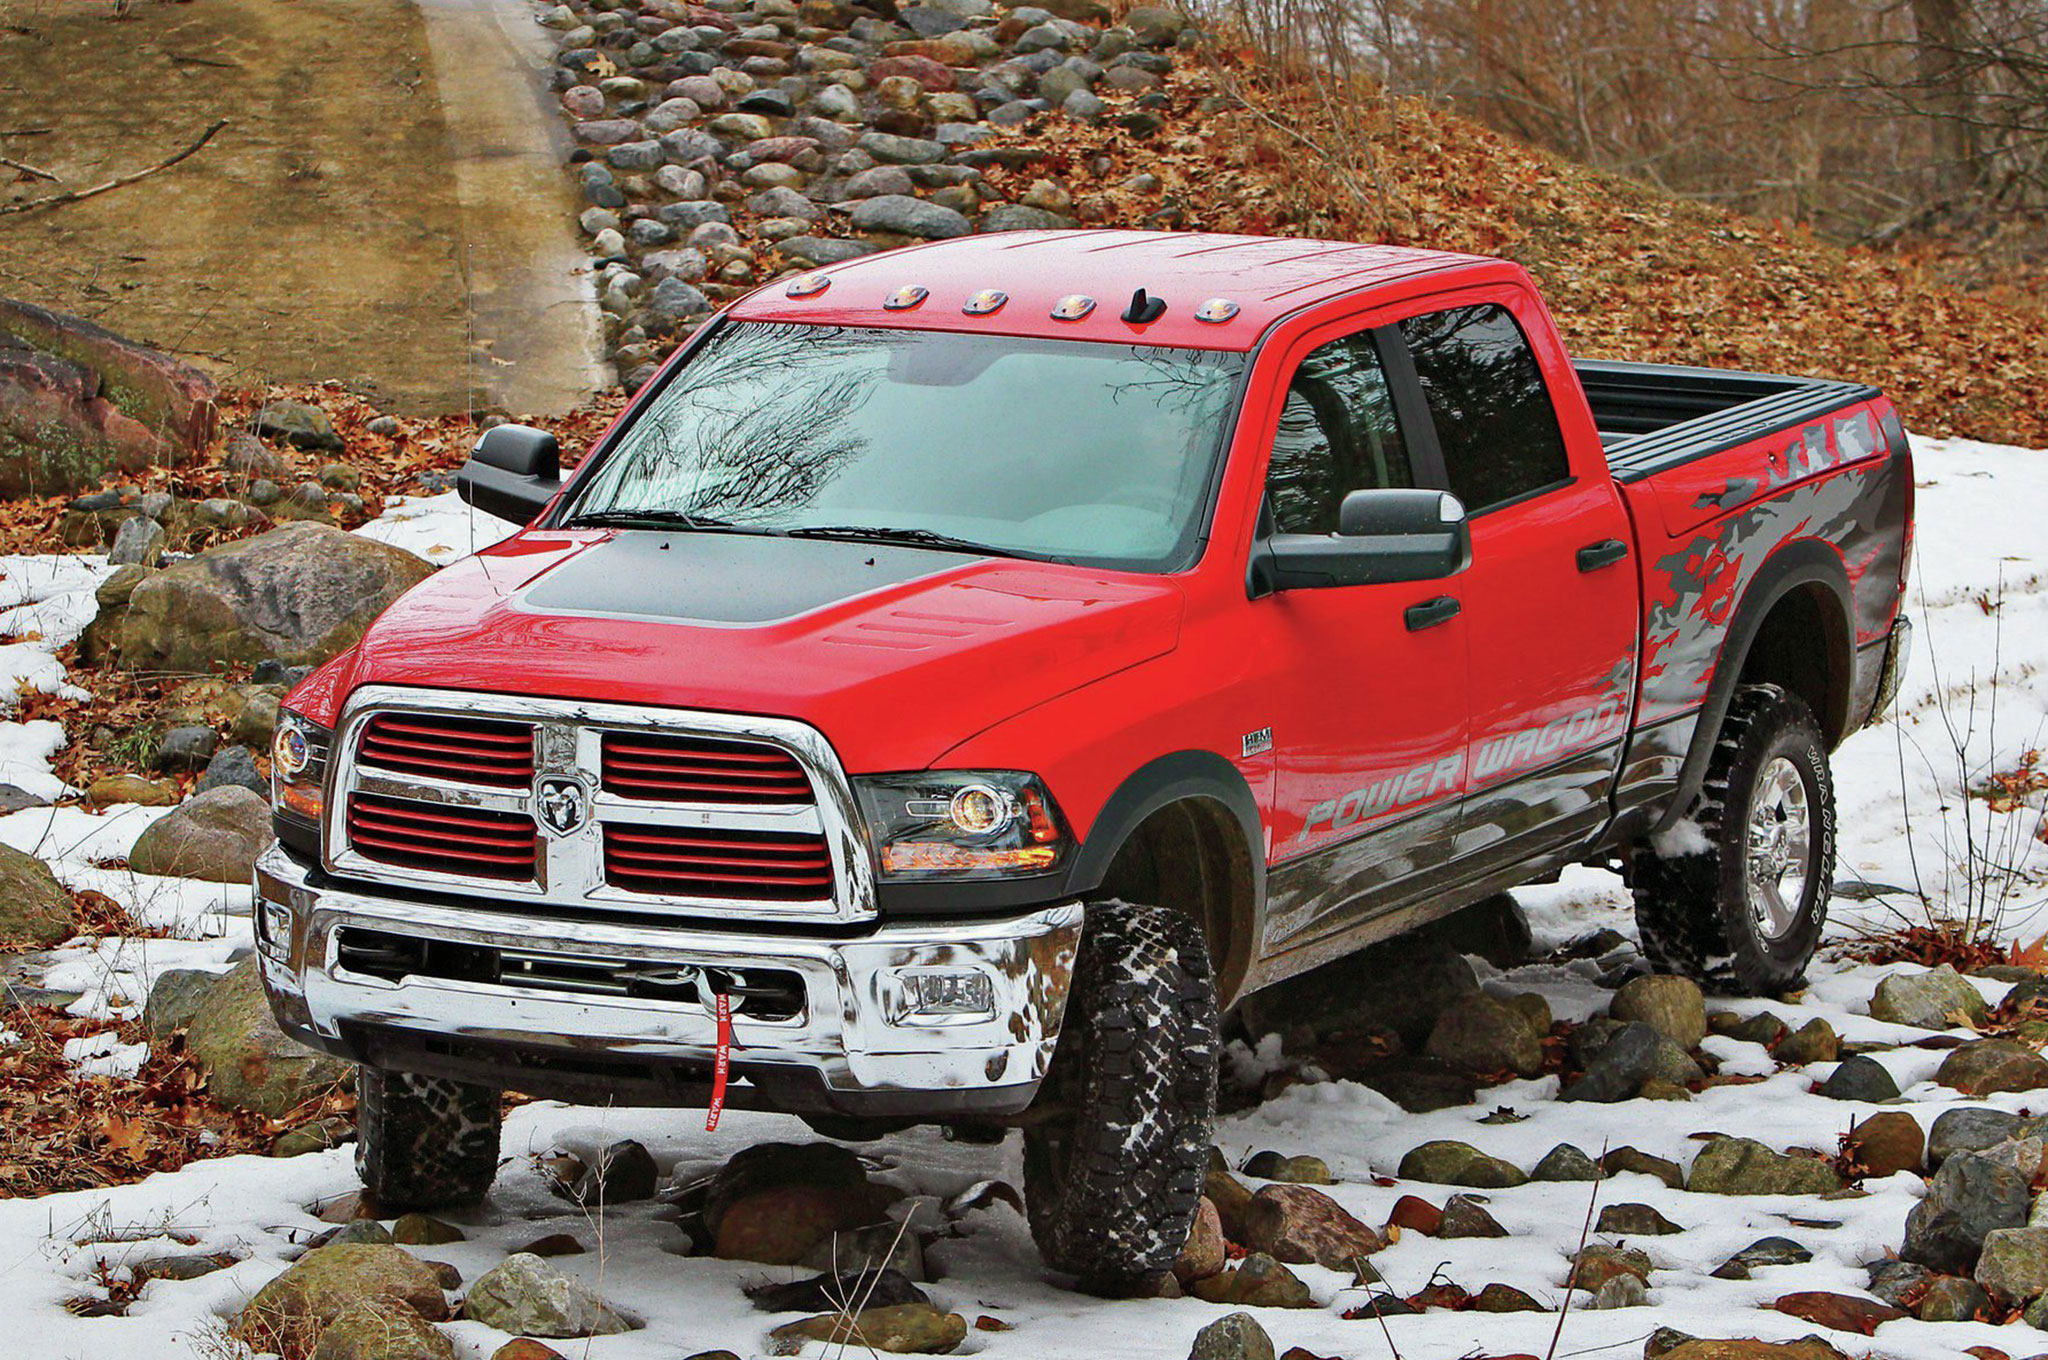 2014 Ram Power Wagon front three quarter